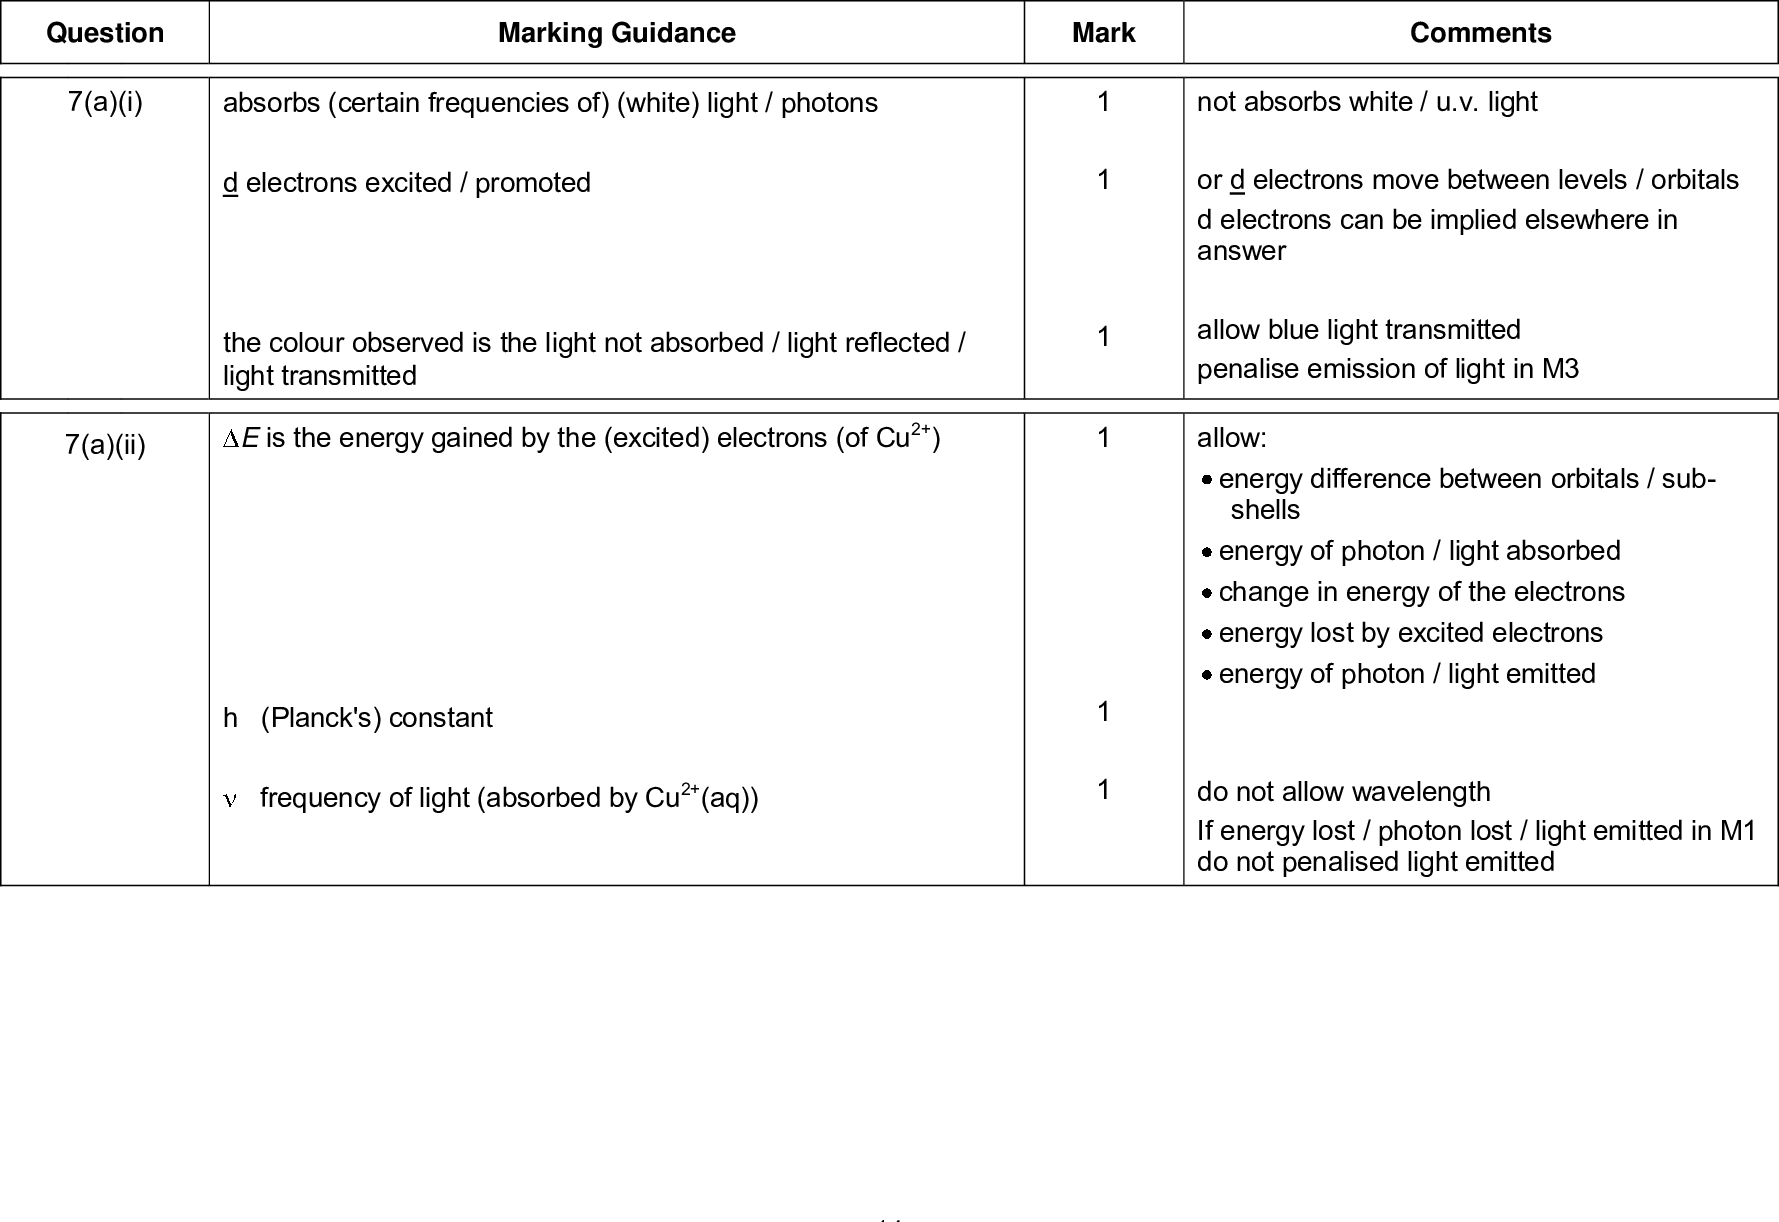 mark scheme general certificate of education a level chemistry unit energetics redox and inorganic chemistry june marking guidance mark comments absorbs certain frequencies of white light photons d electrons excited promoted the colour observed is the light not absorbed light reflected light transmitted e is the energy gained by the excited electrons of cu h planck s constant not absorbs white u v light or d electrons move between levels orbitals d electrons can be implied elsewhere in answer allow blue light transmitted penalise emission of light in m allow energy difference between orbitals sub shells energy of photon light absorbed change in energy of the electrons energy lost by excited electrons energy of photon light emitted do not allow wavelength if energy lost photon lost light emitted in m do not penalised light emitted question a i a ii frequency of light absorbed by cu aq mark scheme general certificate of education a level chemistry unit energetics redox and inorganic chemistry june a iii cucl h o cu h o cl tetrahedral cl cl chlorine too big to fit more than round cu b c i lone pair s on o o cu h o c o product correct equation balanced octahedral cu c o h o h o is incorrect note that cucl penalise charges shown separately on the ligand and overall penalise hcl allow water smaller than cl explanation that change in shape is due to change in co ordination number allow ion drawn with any bond angles ion in square brackets with overall charge shown outside the brackets ion with delocalised o c o bonds in carboxylate group s allow position of lone pair s shown on o in the diagram even if the diagram is incorrect note can only score m and m if m awarded or if complex in equation has waters and ethanedioates if this condition is satisfied the complex can have the wrong charge s to allow access to m and m but not m mark scheme general certificate of education a level chemistry unit energetics redox and inorganic chemistry june c ii o ignore charges diagram must